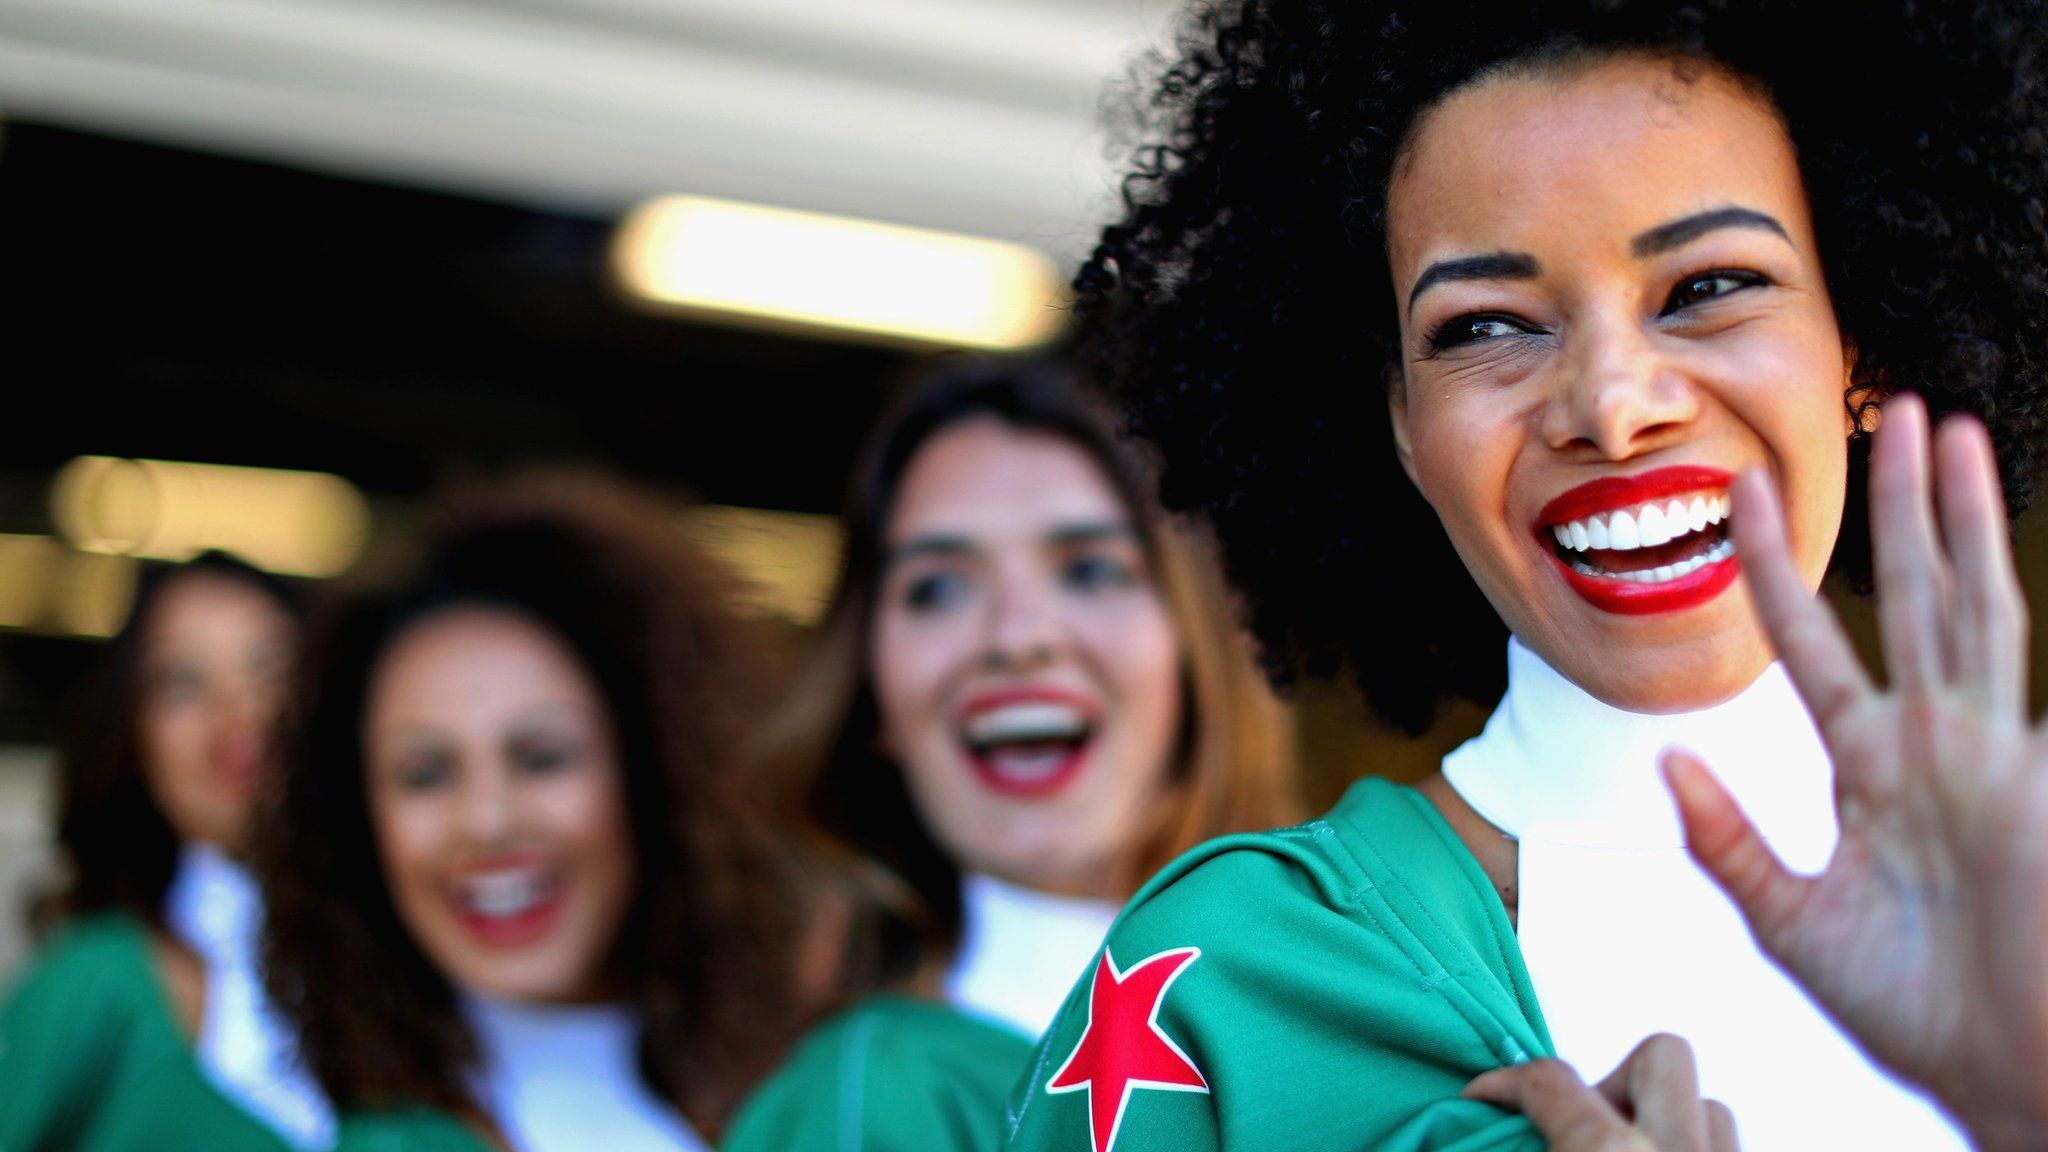 F1 'grid girls' under 'strong review' how did you vote